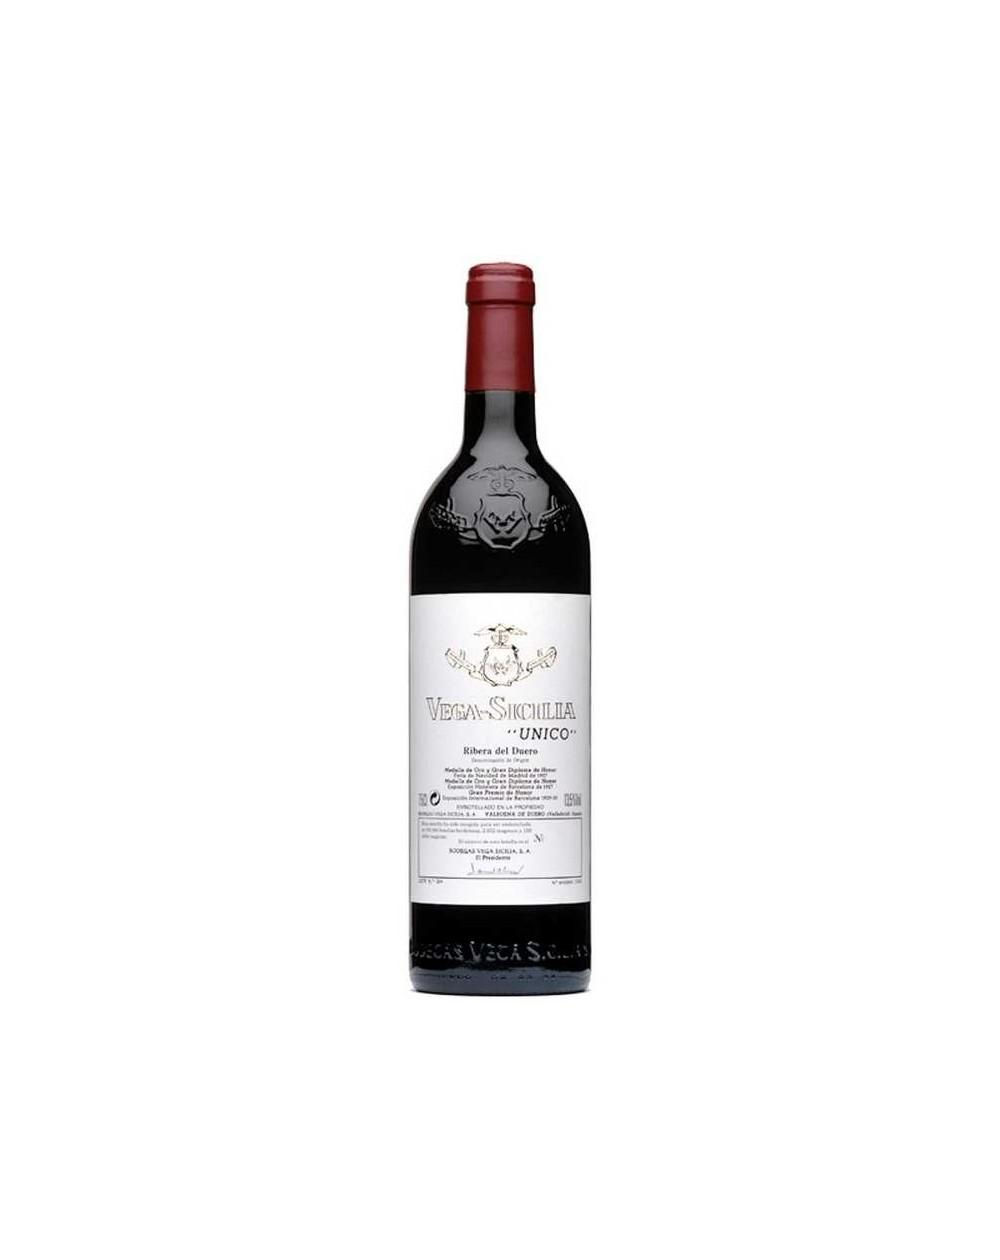 Buy 1969 Vega Sicilia Unico Price And Reviews At Drinks Co